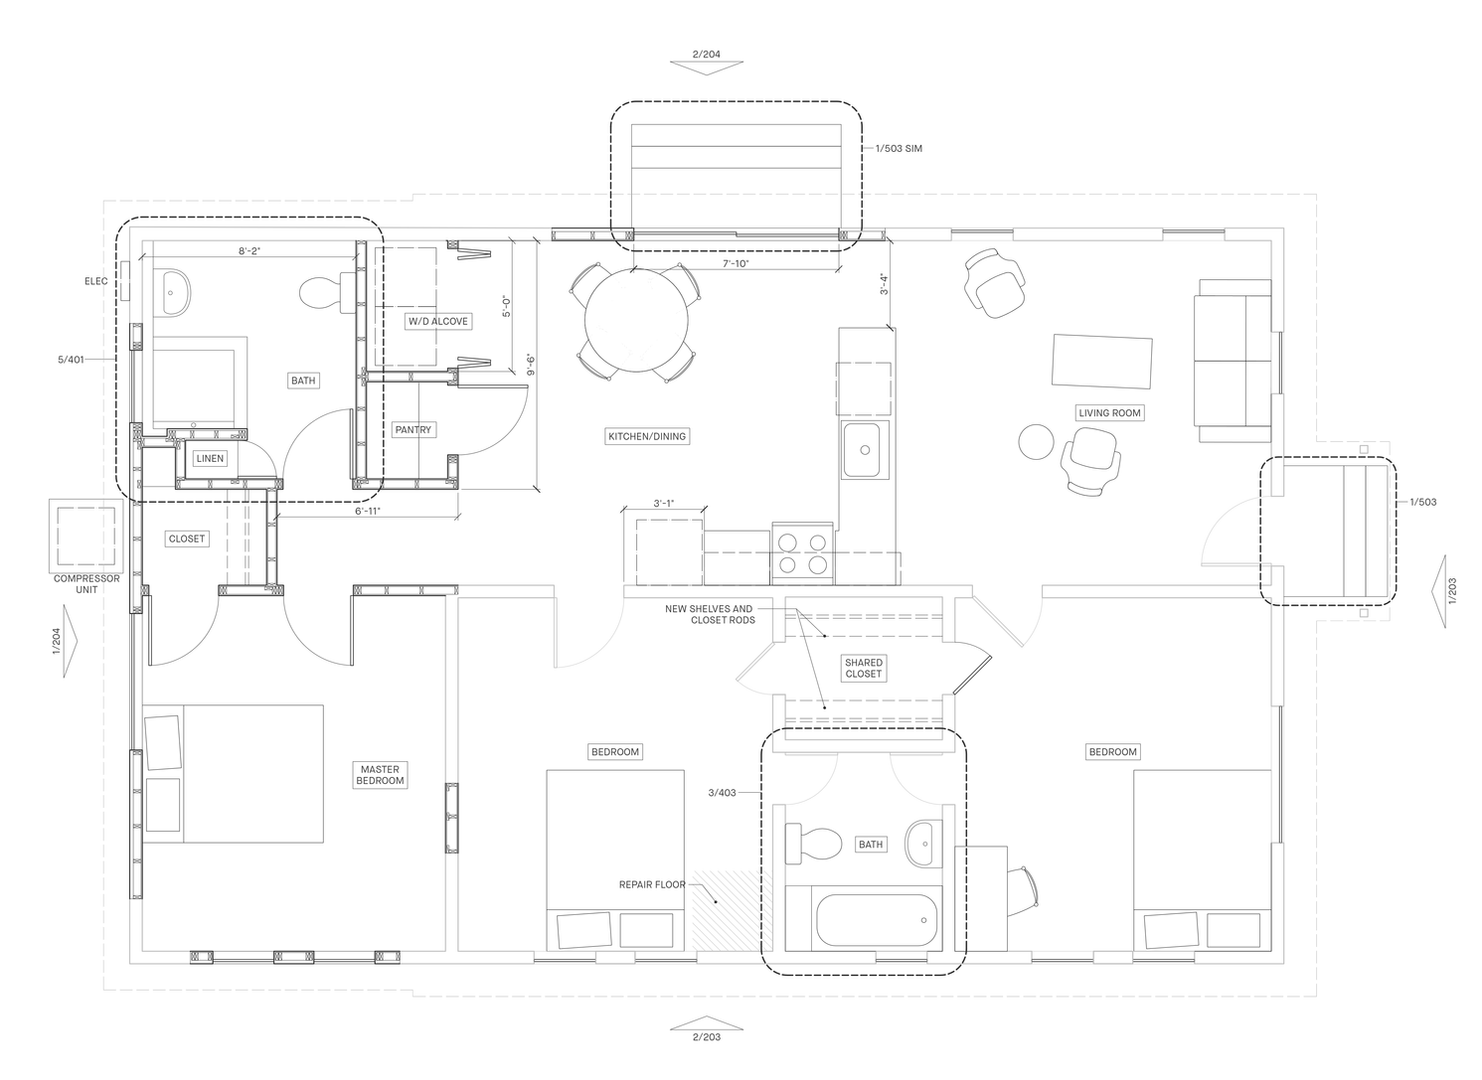 20_05_30-104 Floor Plan-New.png